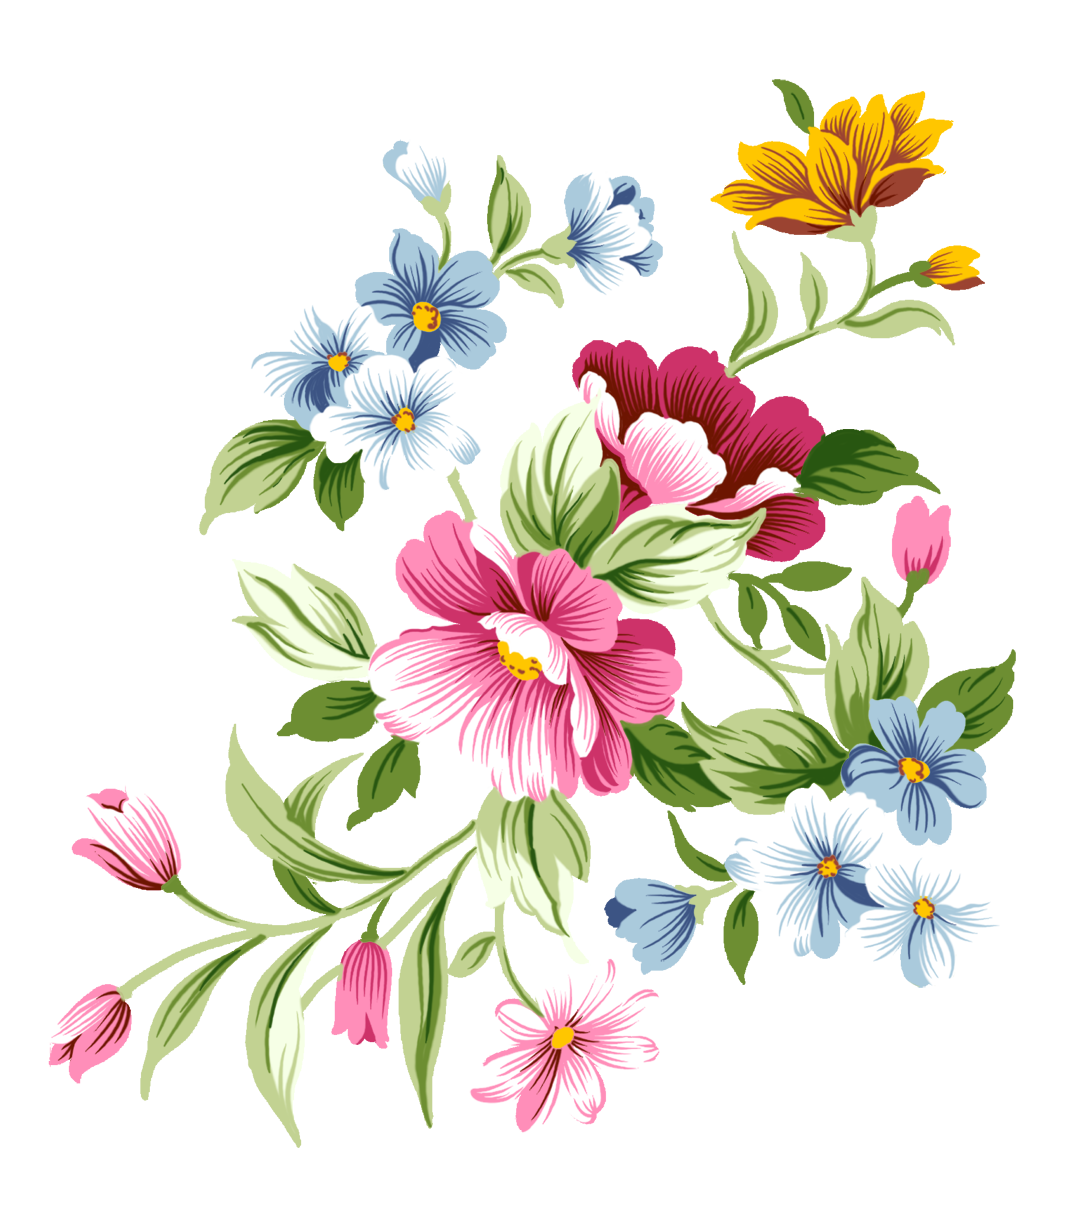 Flower garden background clipart clip library stock Pink flowers Clip art - flowers background 1084*1222 transprent Png ... clip library stock